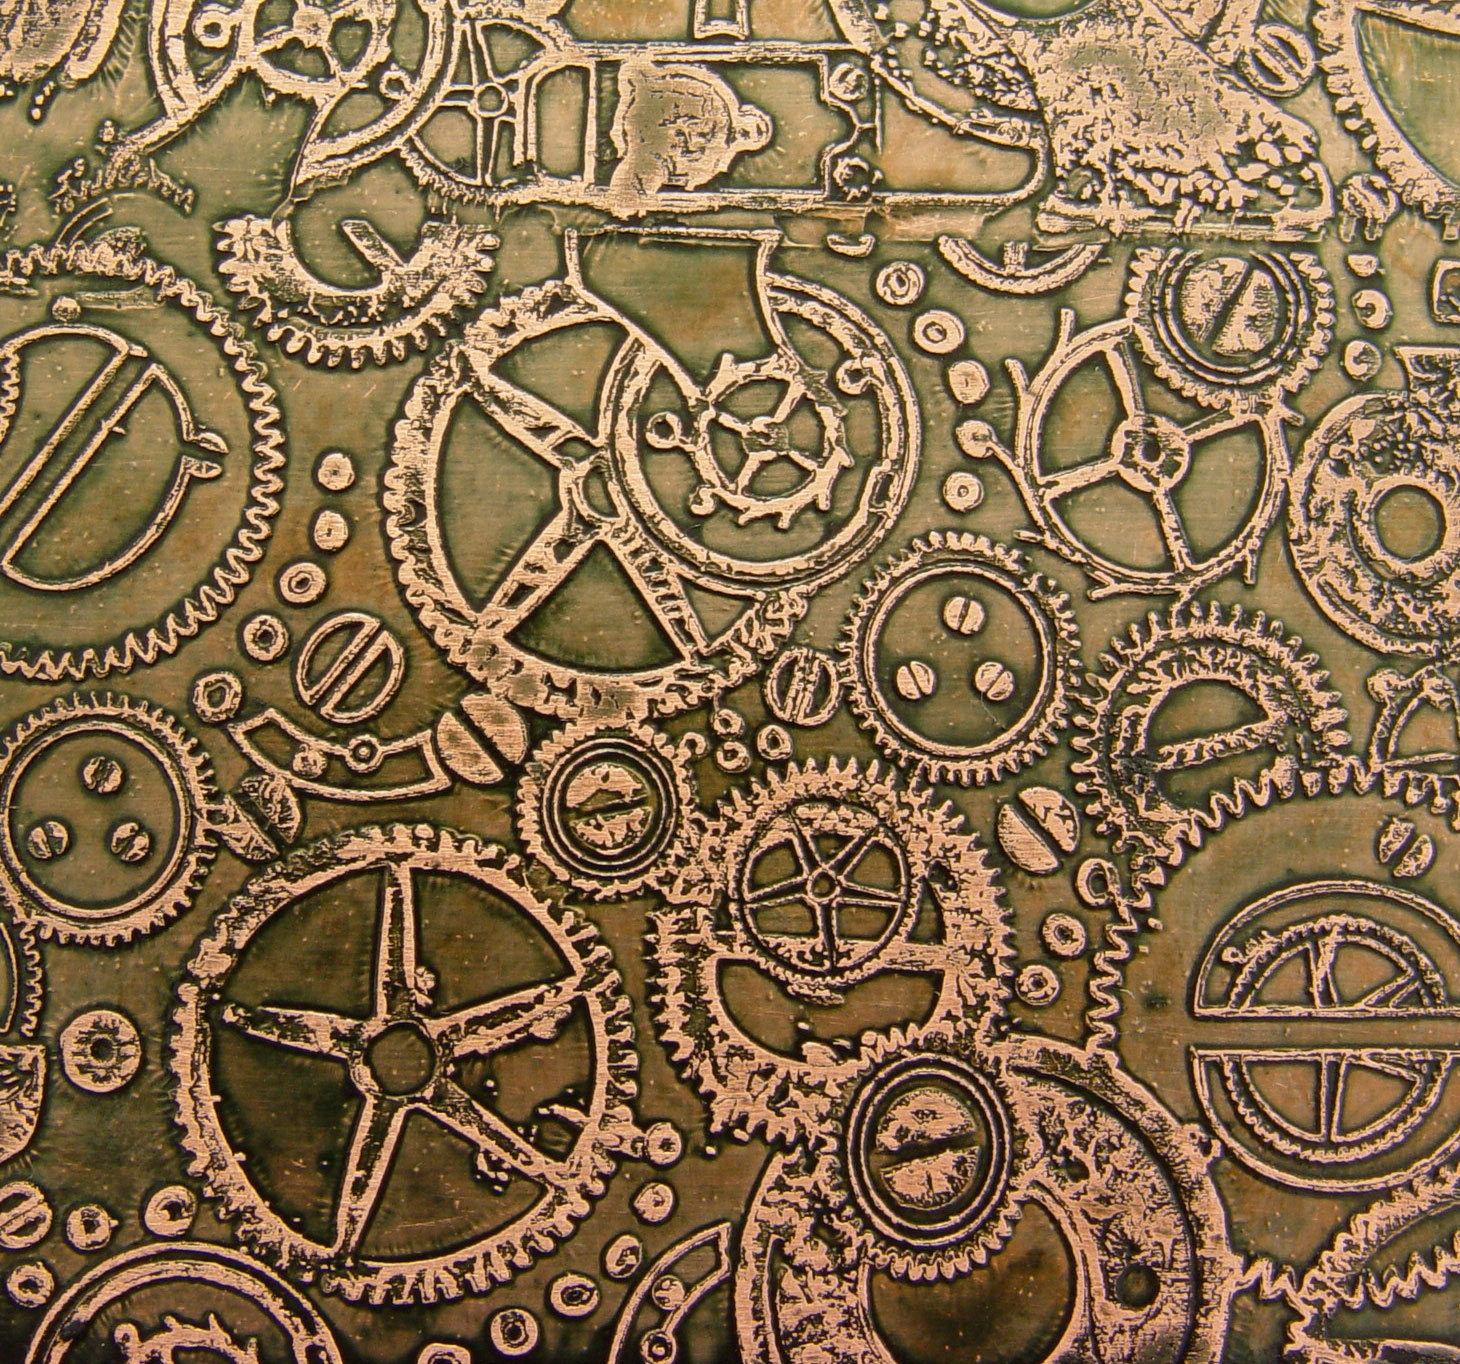 Etched Copper Sheet Steampunk Olive Green Patina 4x3 Inches